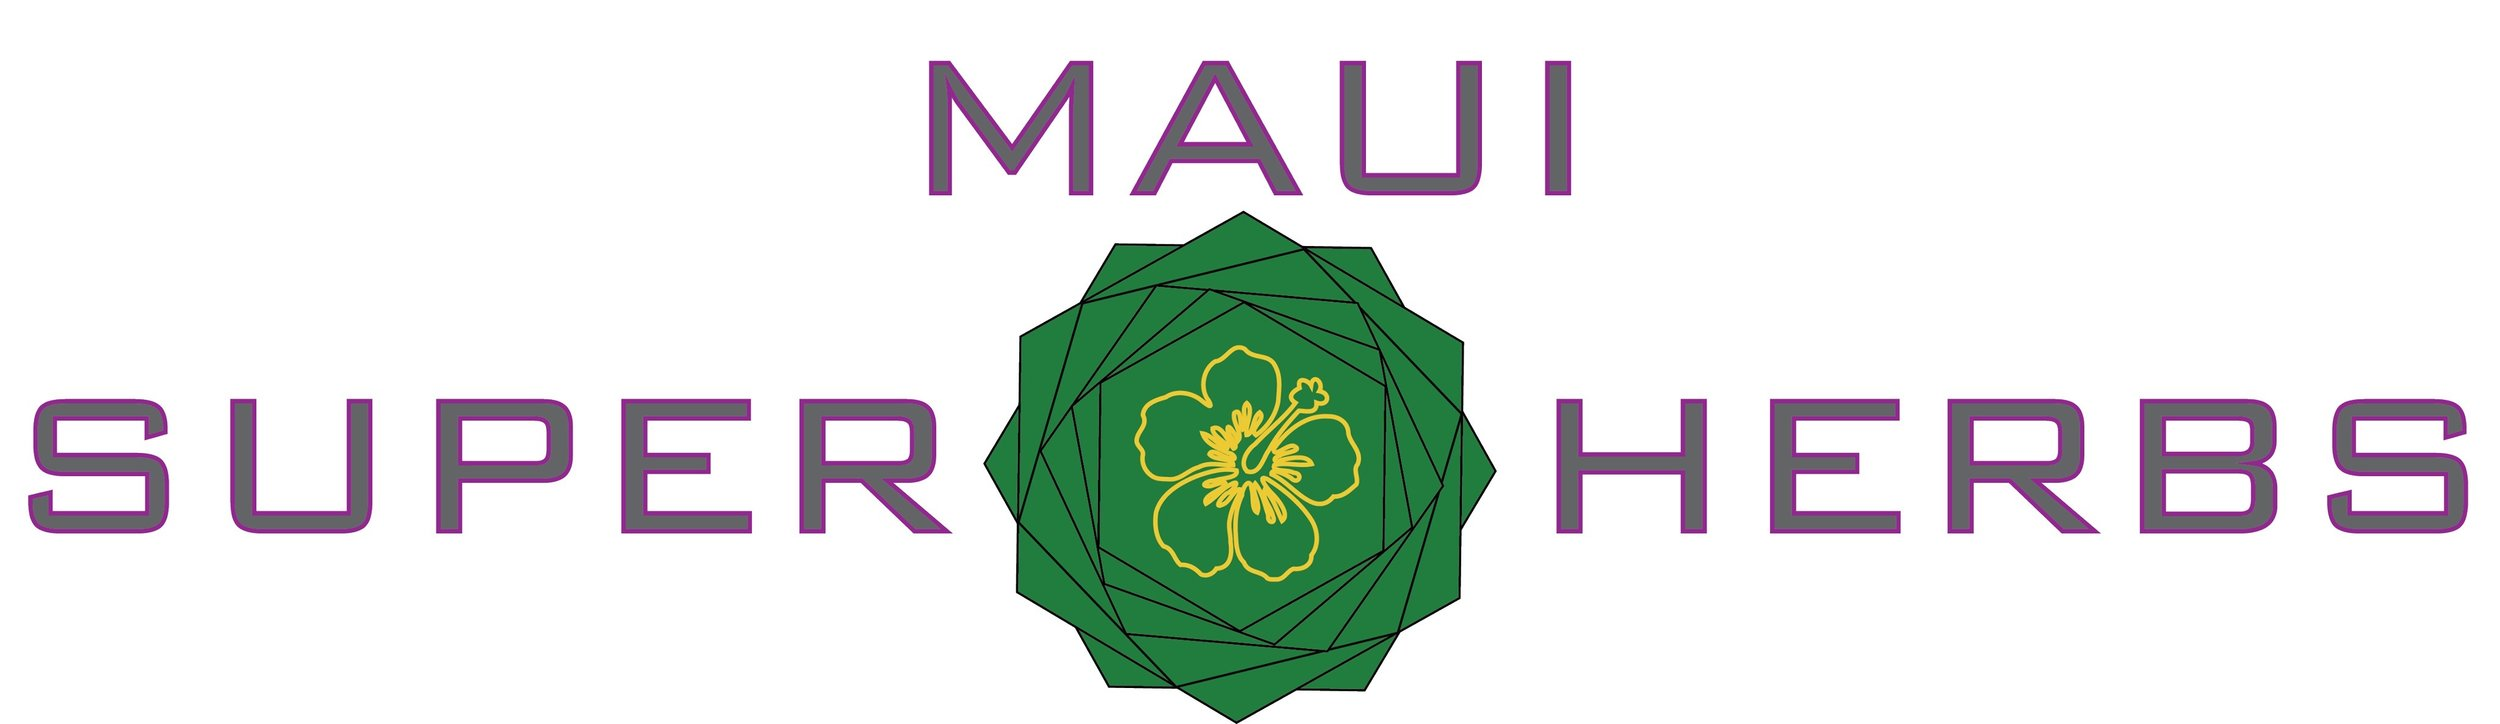 Our brand is Beyond Organic Polynesian Sun Grown Hand Harvested on the majestic island of Maui. We specialize in the fusion of Hemp Cannabinoids with Hawaiian Bio Regional herbs,fruits,seeds,and mushrooms. We create edible and medicinal formulations from over 125 herbs we grow here on our 12 acre property in a Hawaiian Homeland of Maui. - Experience the healing power of Organic Maui Grown© Herbal Edibles, Elixirs, and Treats